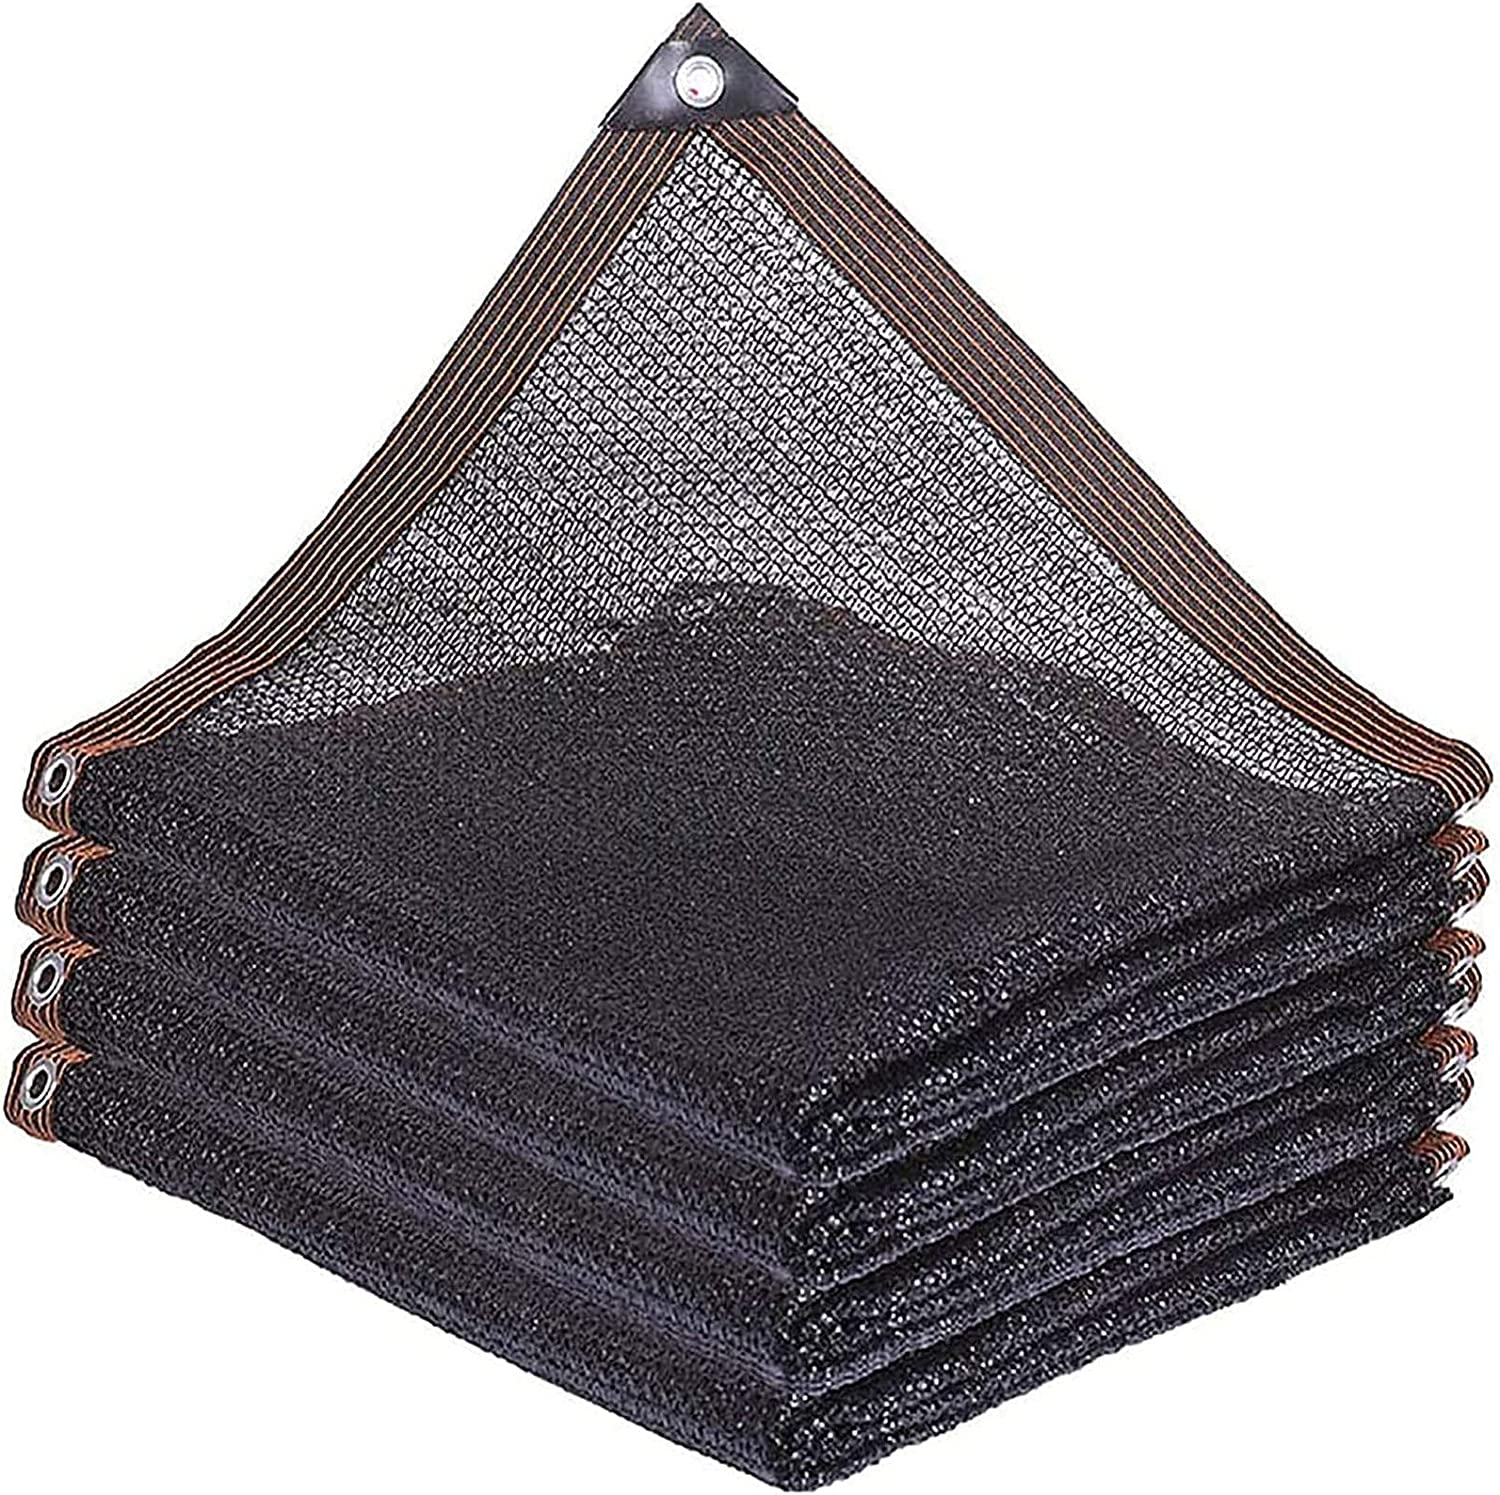 Shade Cloth for Plants Max 59% OFF 75% Netting Ranking TOP18 Black with Grommets G